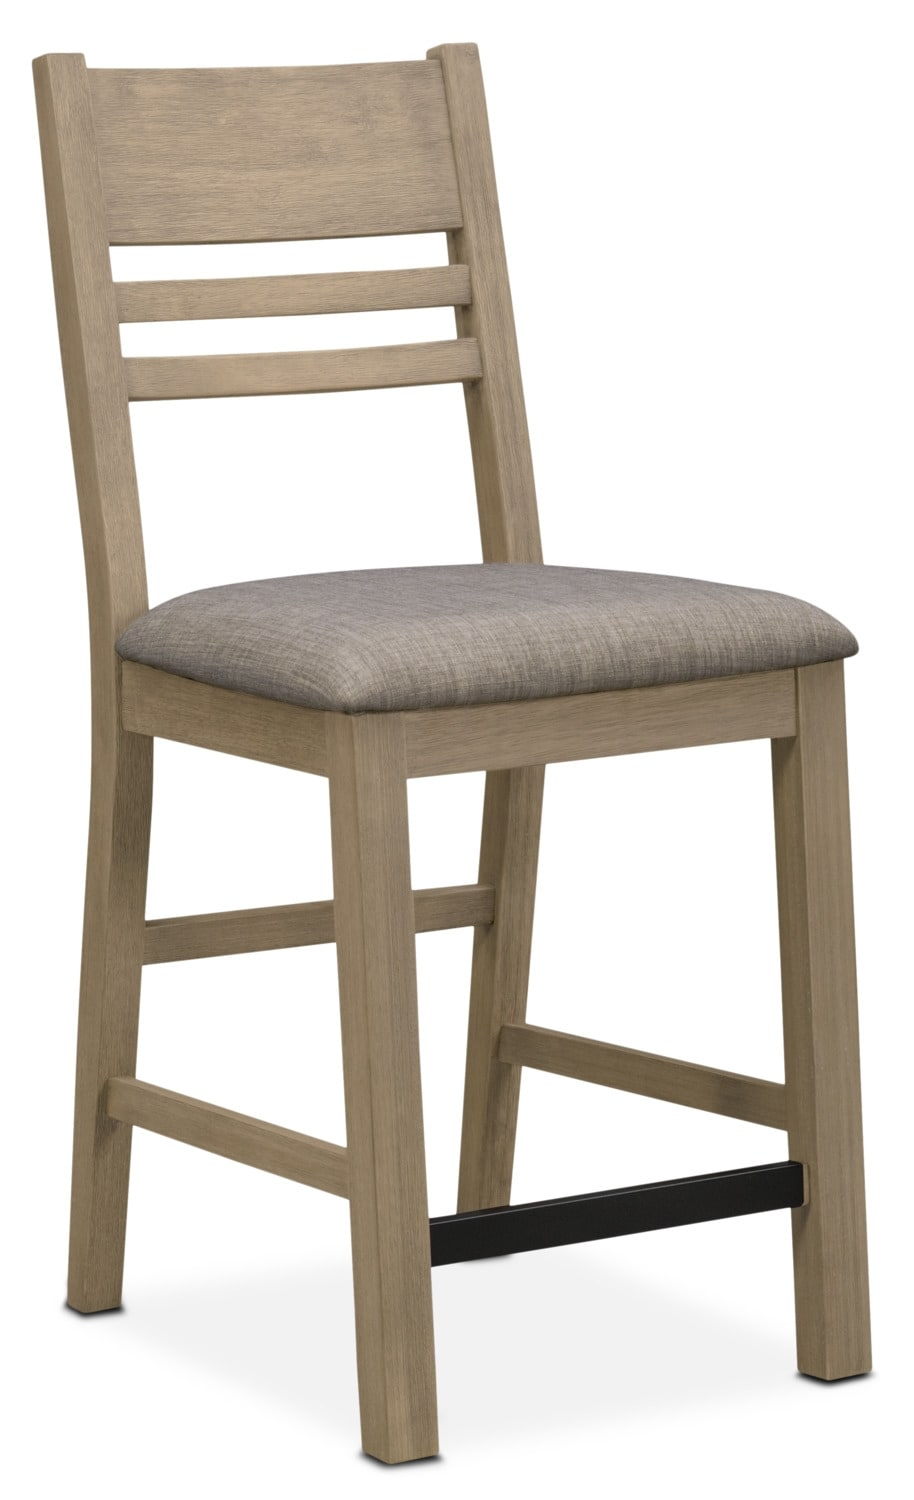 Dining Room Furniture - Tribeca Counter-Height Dining Chair